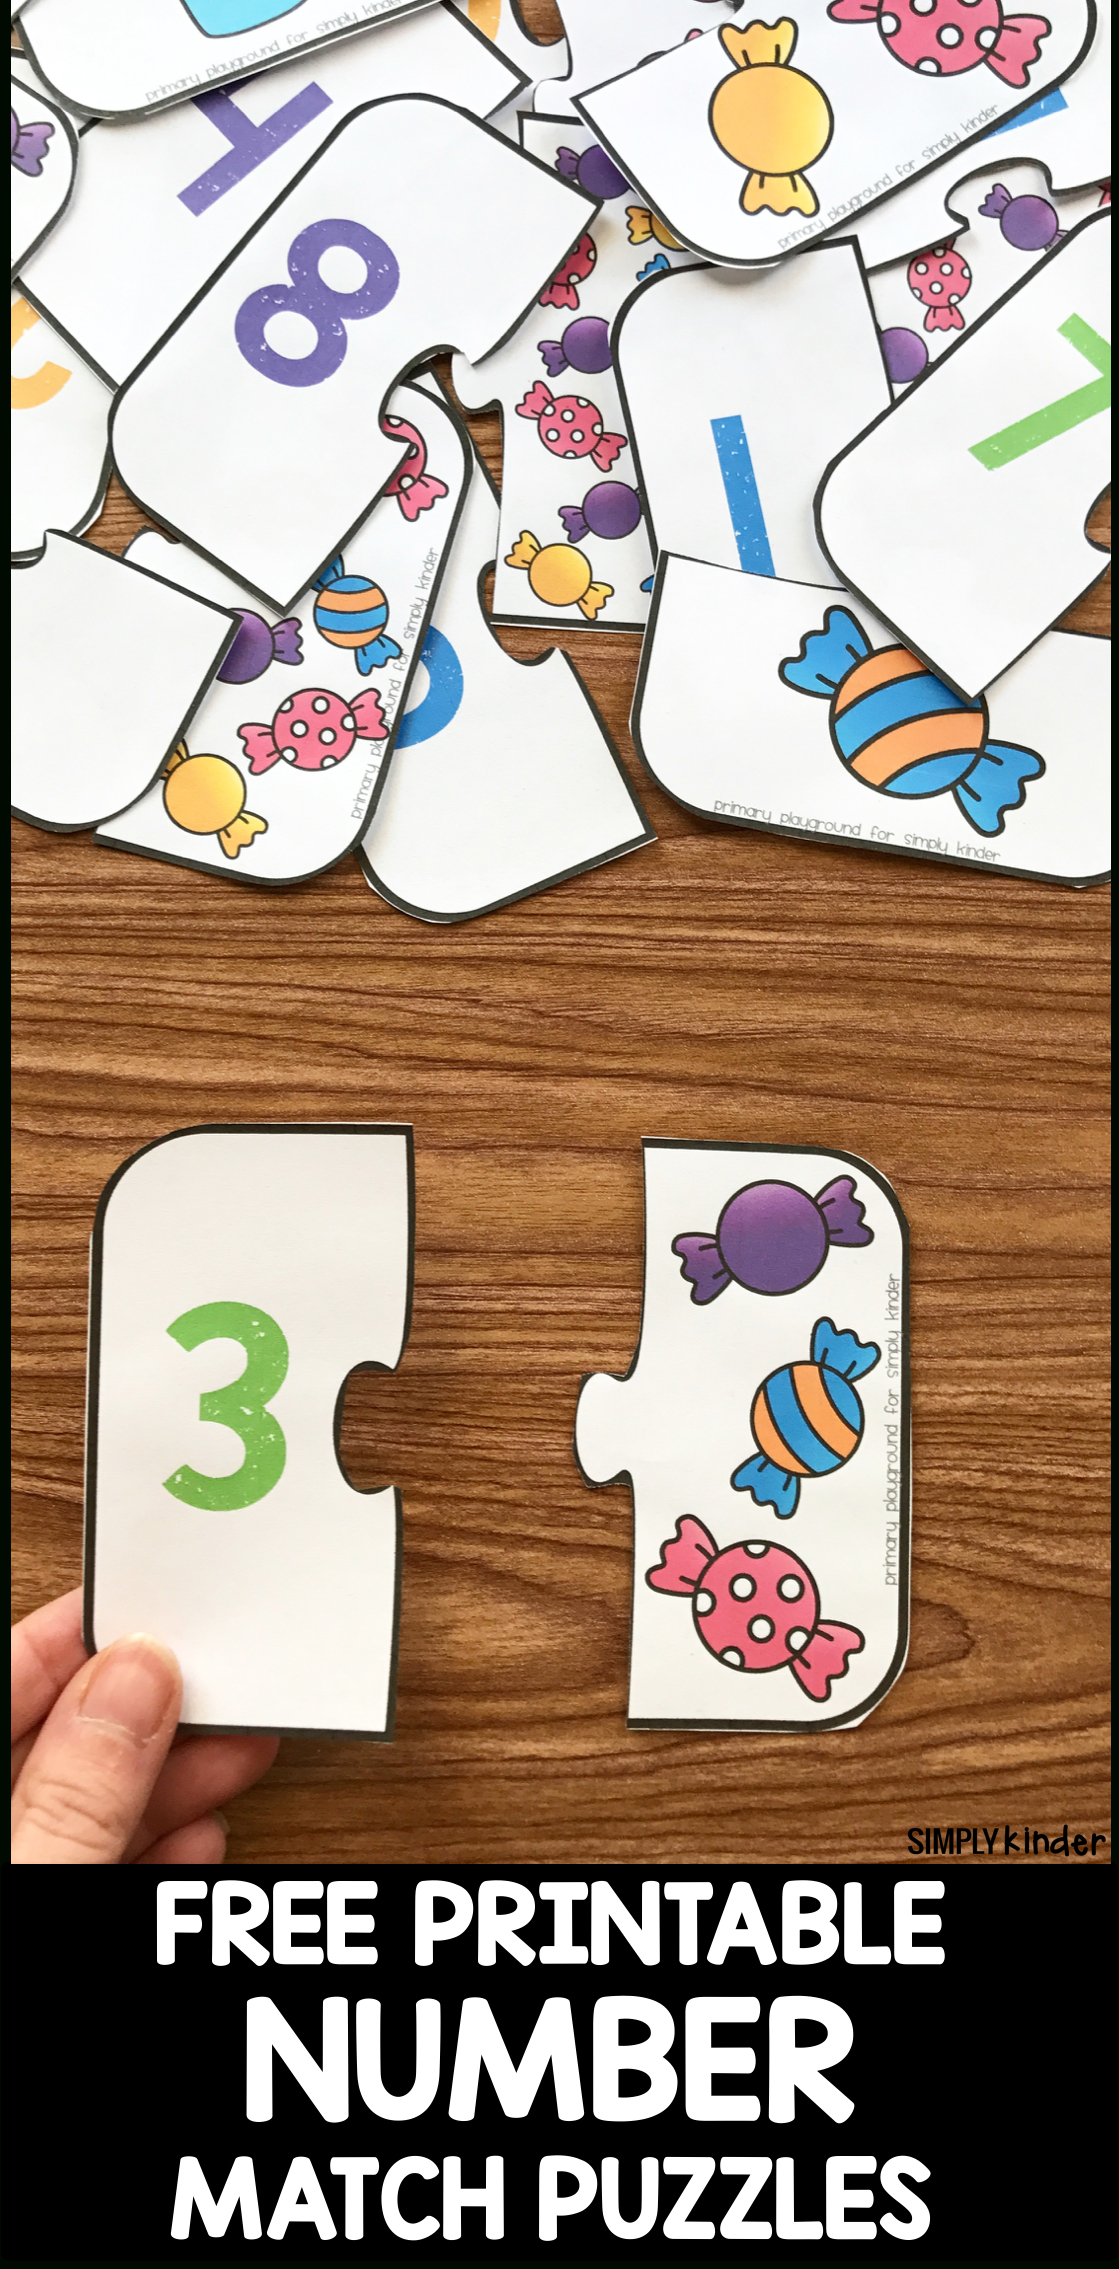 Free Printable Number Match Puzzles - Simply Kinder - Printable Puzzles Preschool